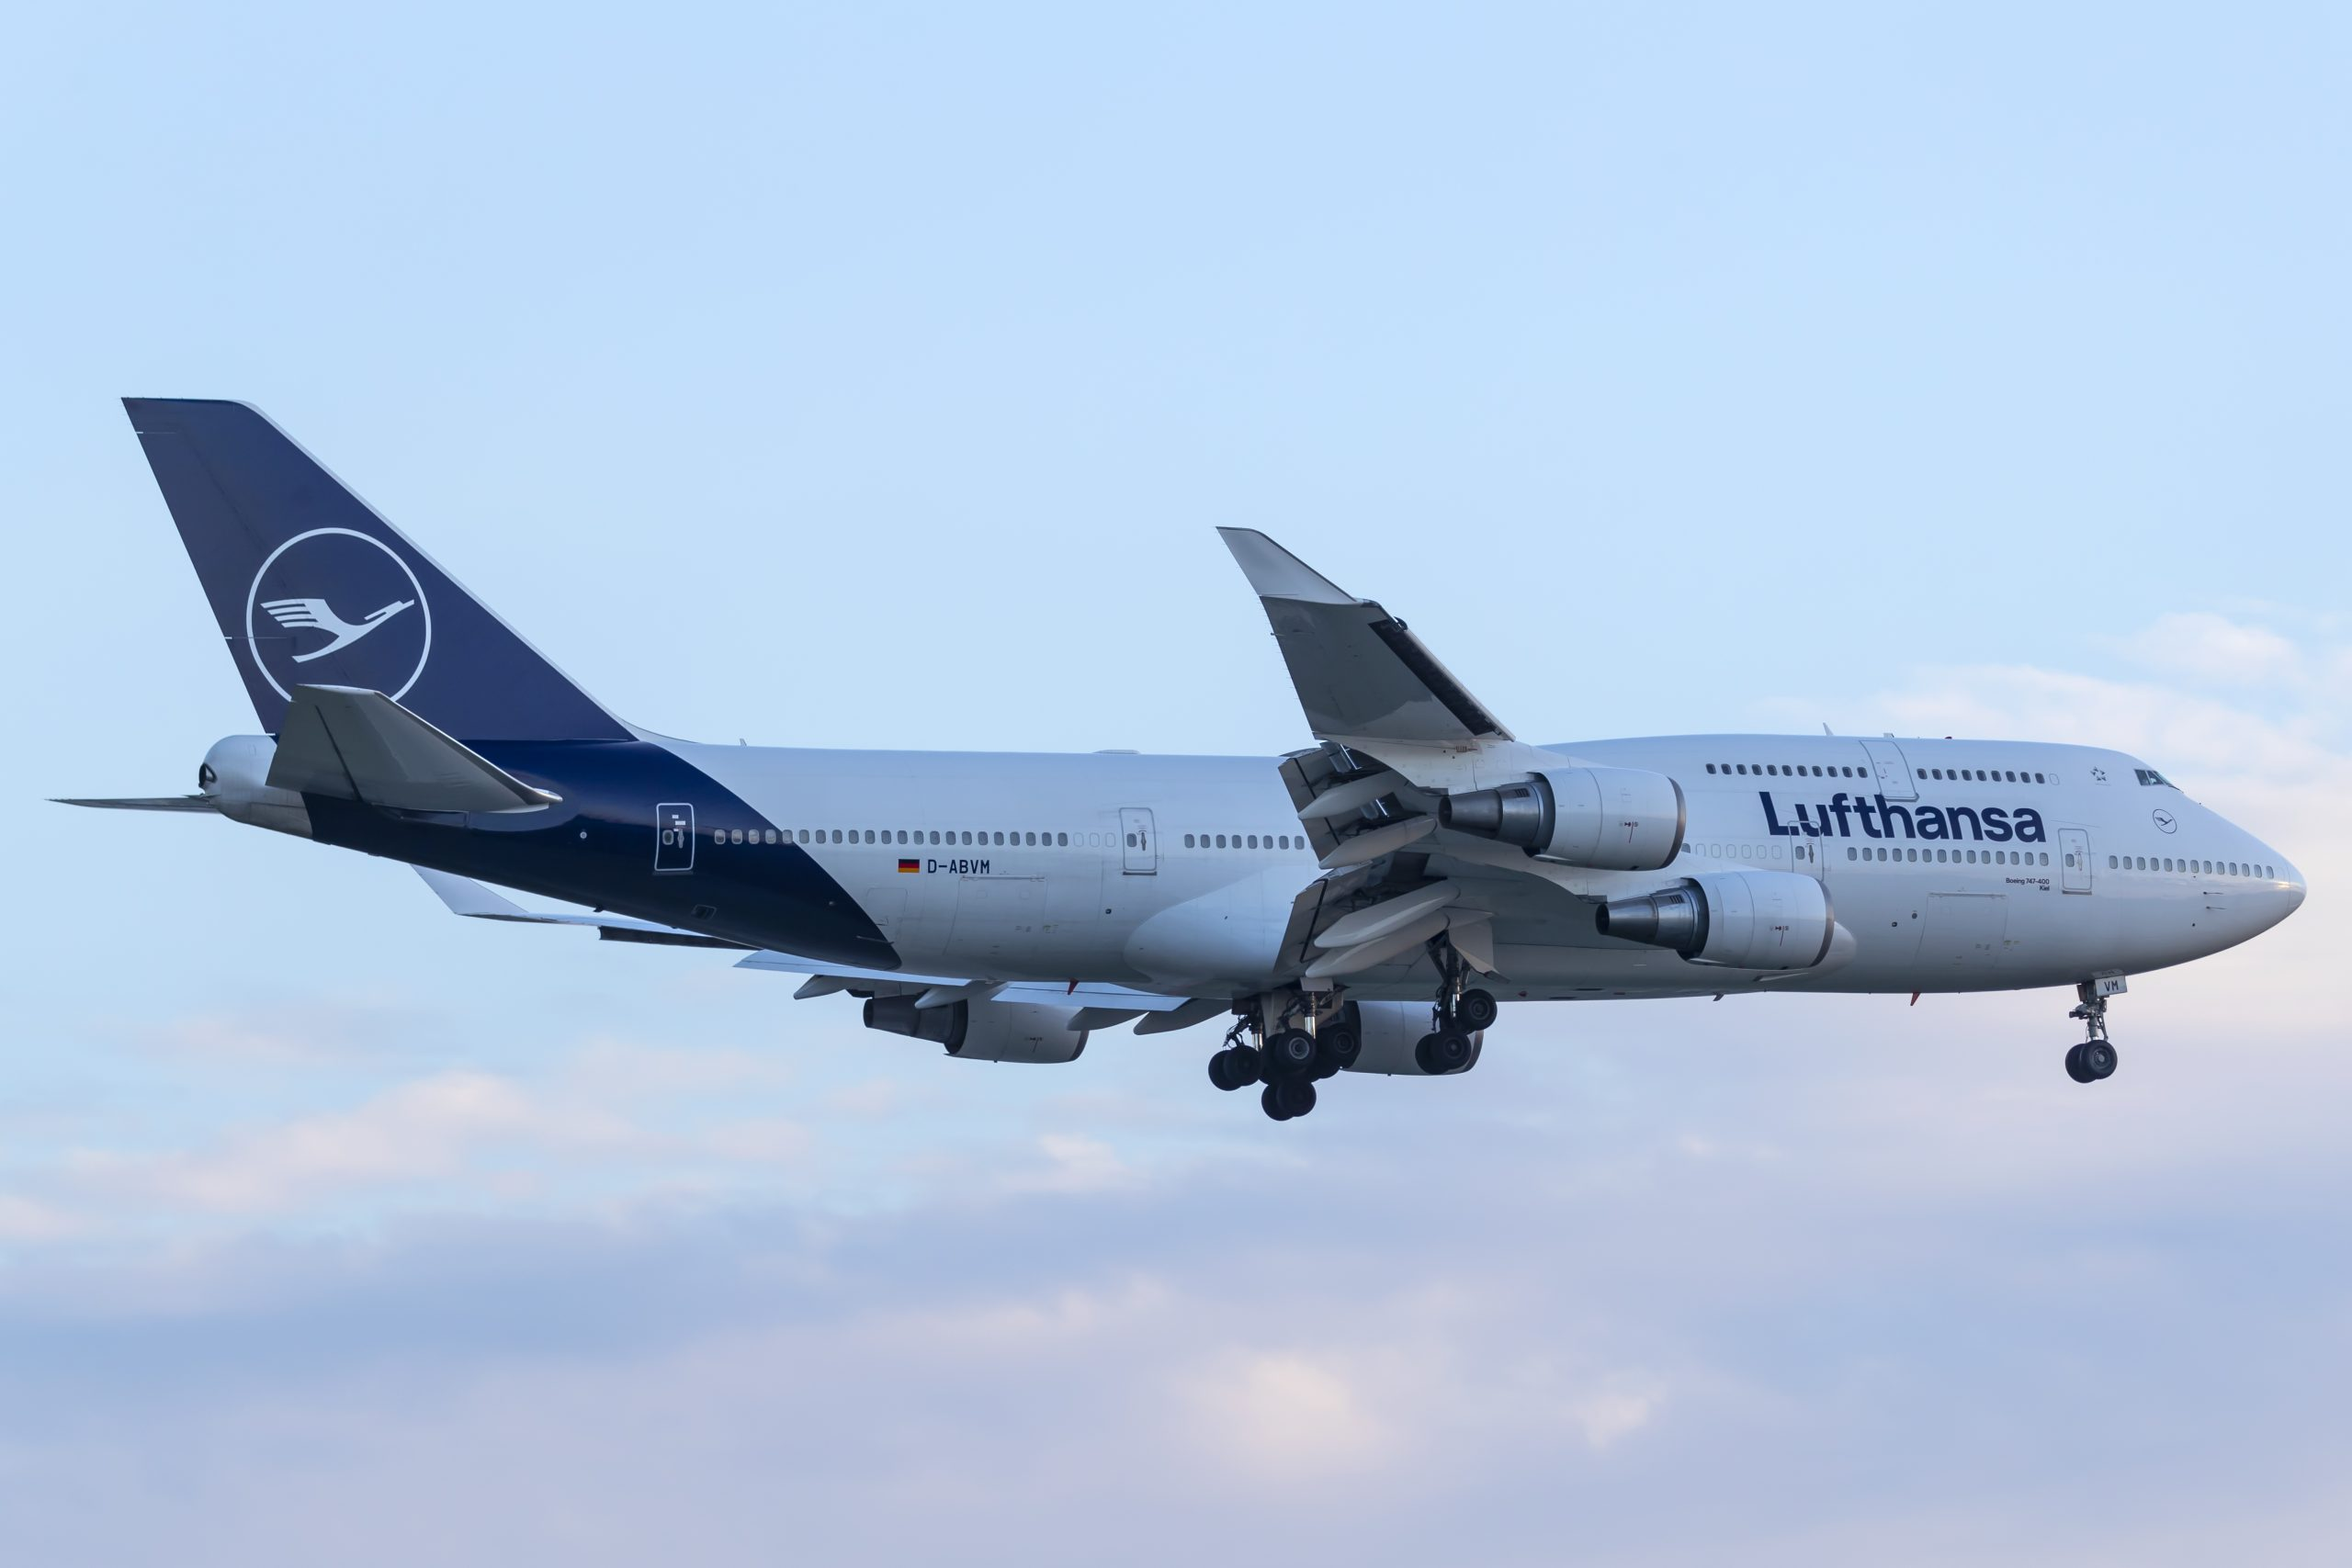 En Boeing 747-400 fra Lufthansa. Foto: © Thorbjørn Brunander Sund, Danish Aviation Photo